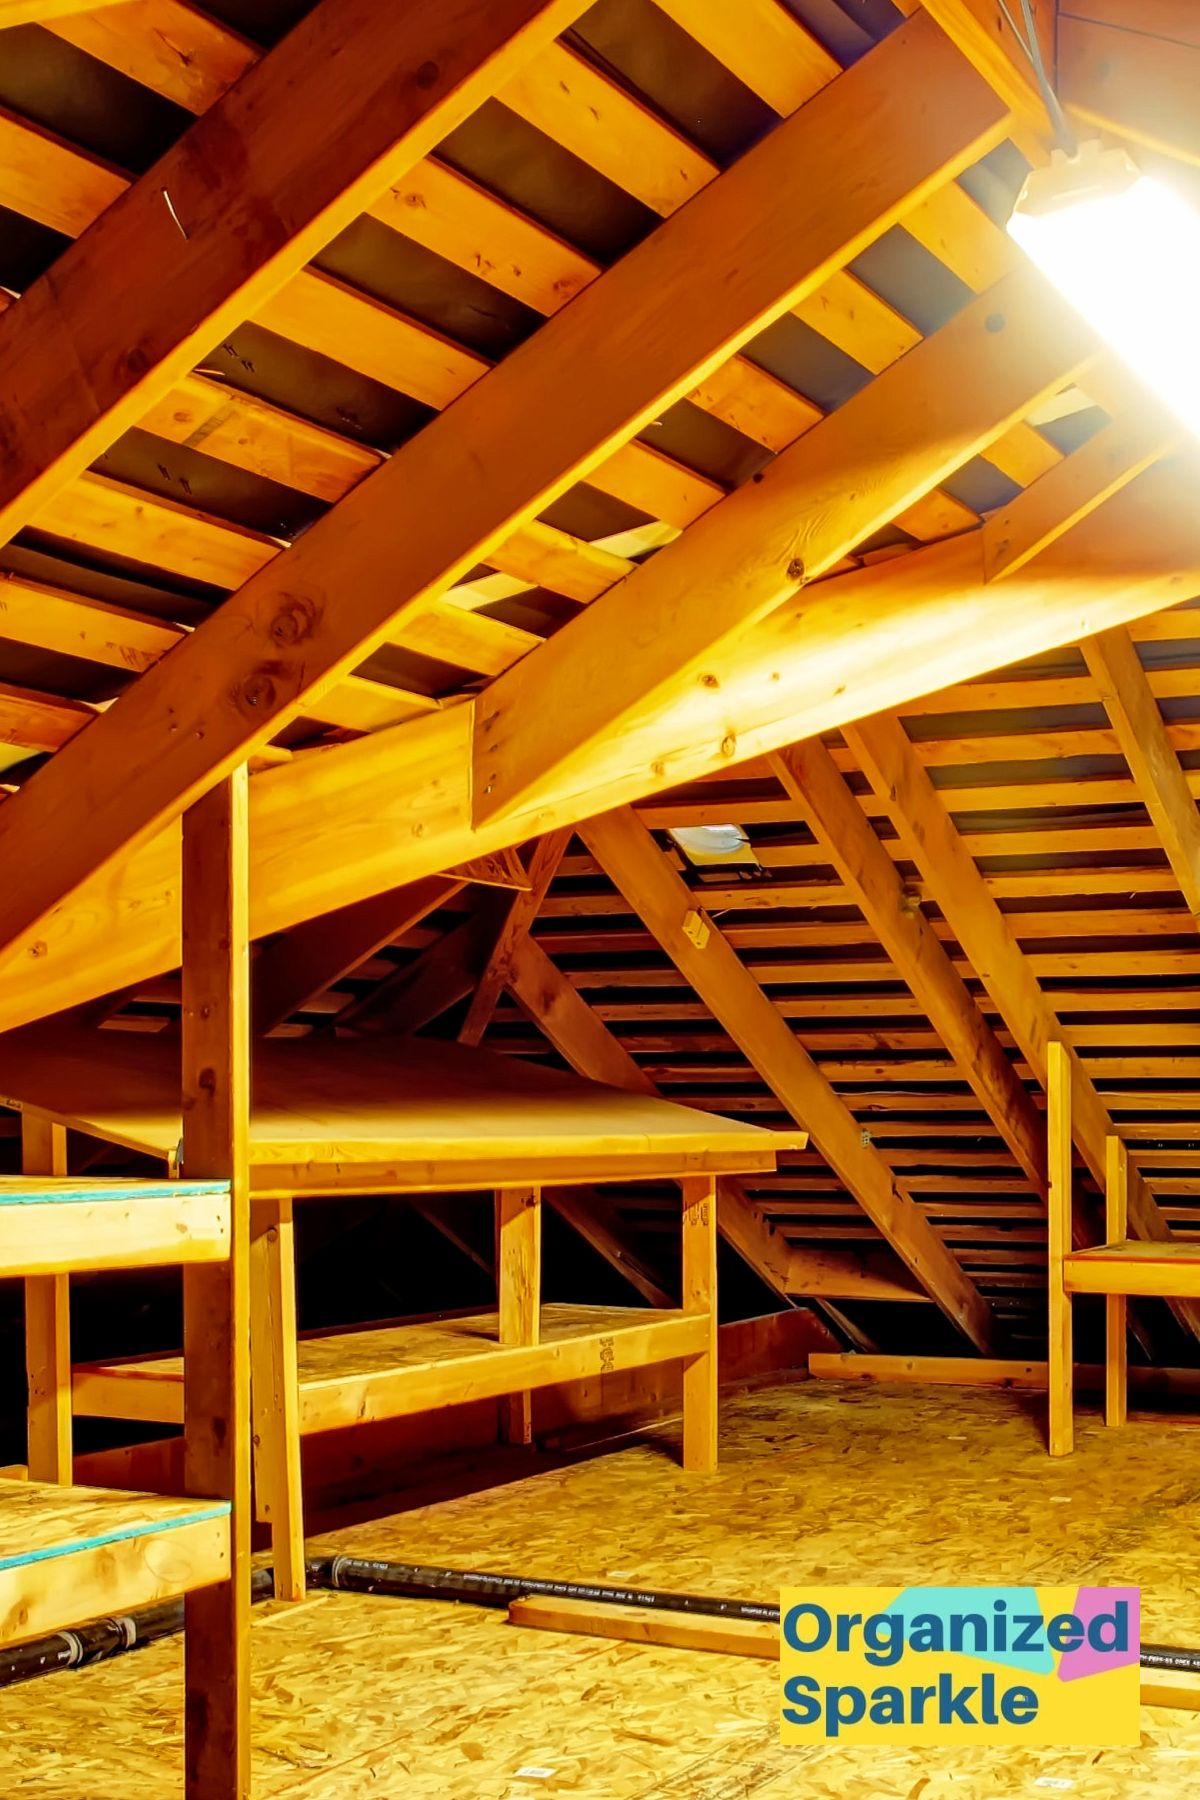 How To Organize The Attic Tips For Decluttering Your Attic In 2020 Attic Storage Organization Declutter Attic Organization